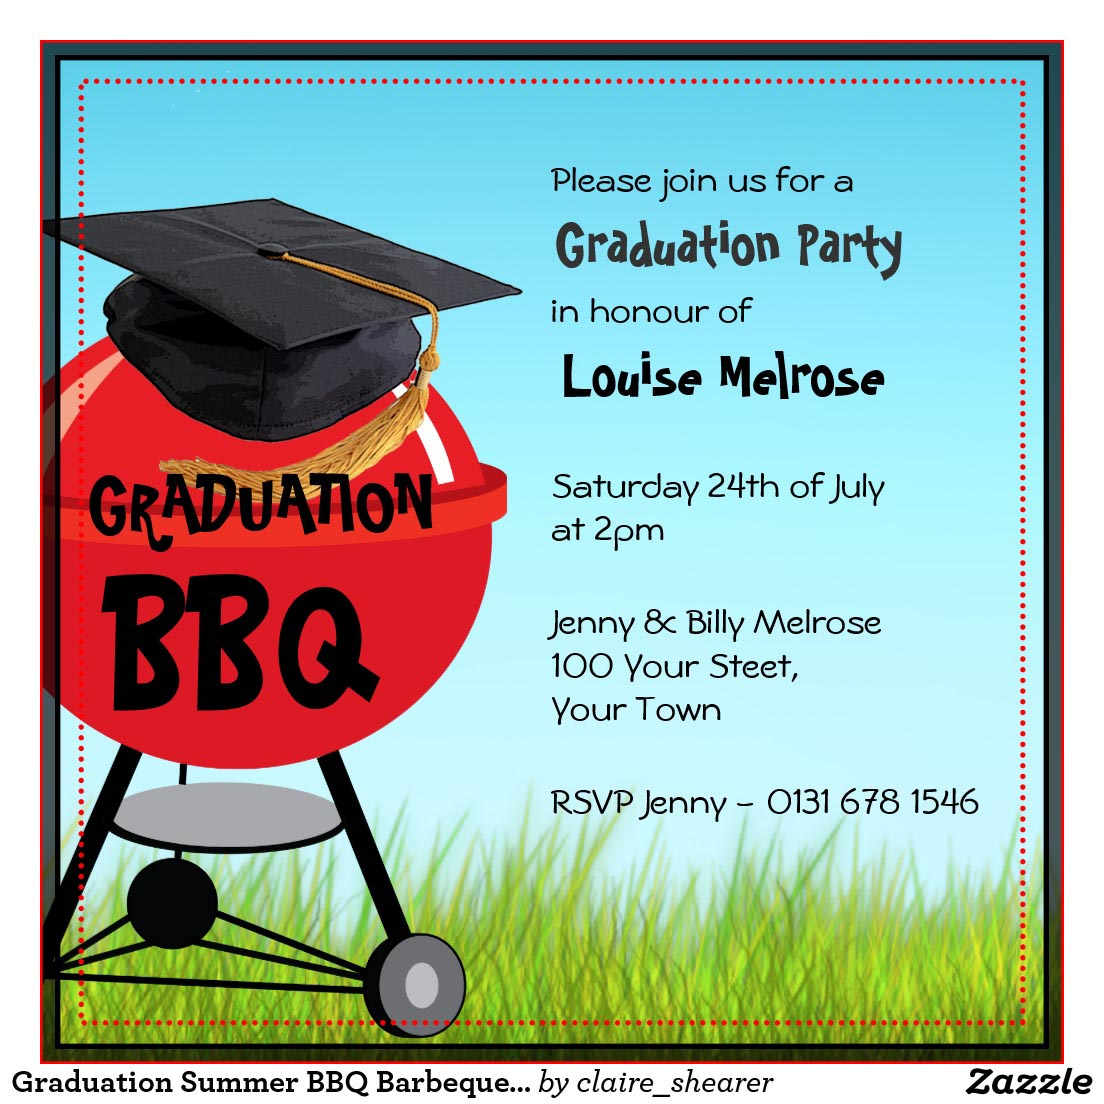 bbq graduation party invitations fire pit design ideas